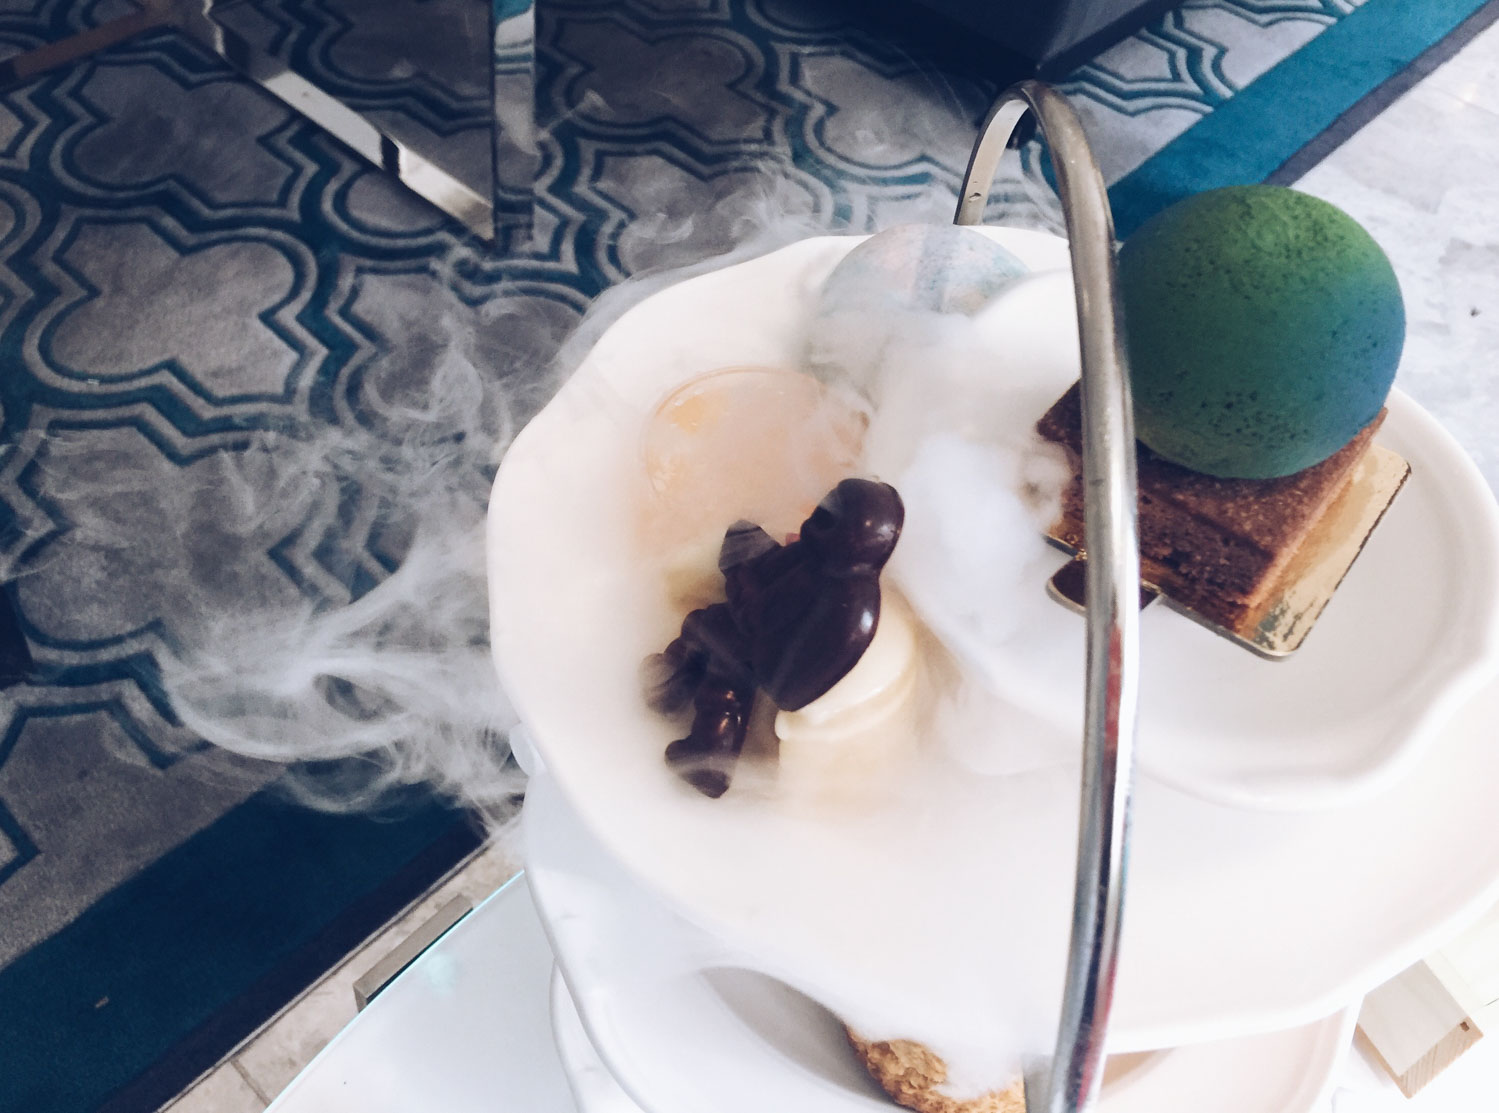 Best afternoon teas in London - Science tea at The Ampersand